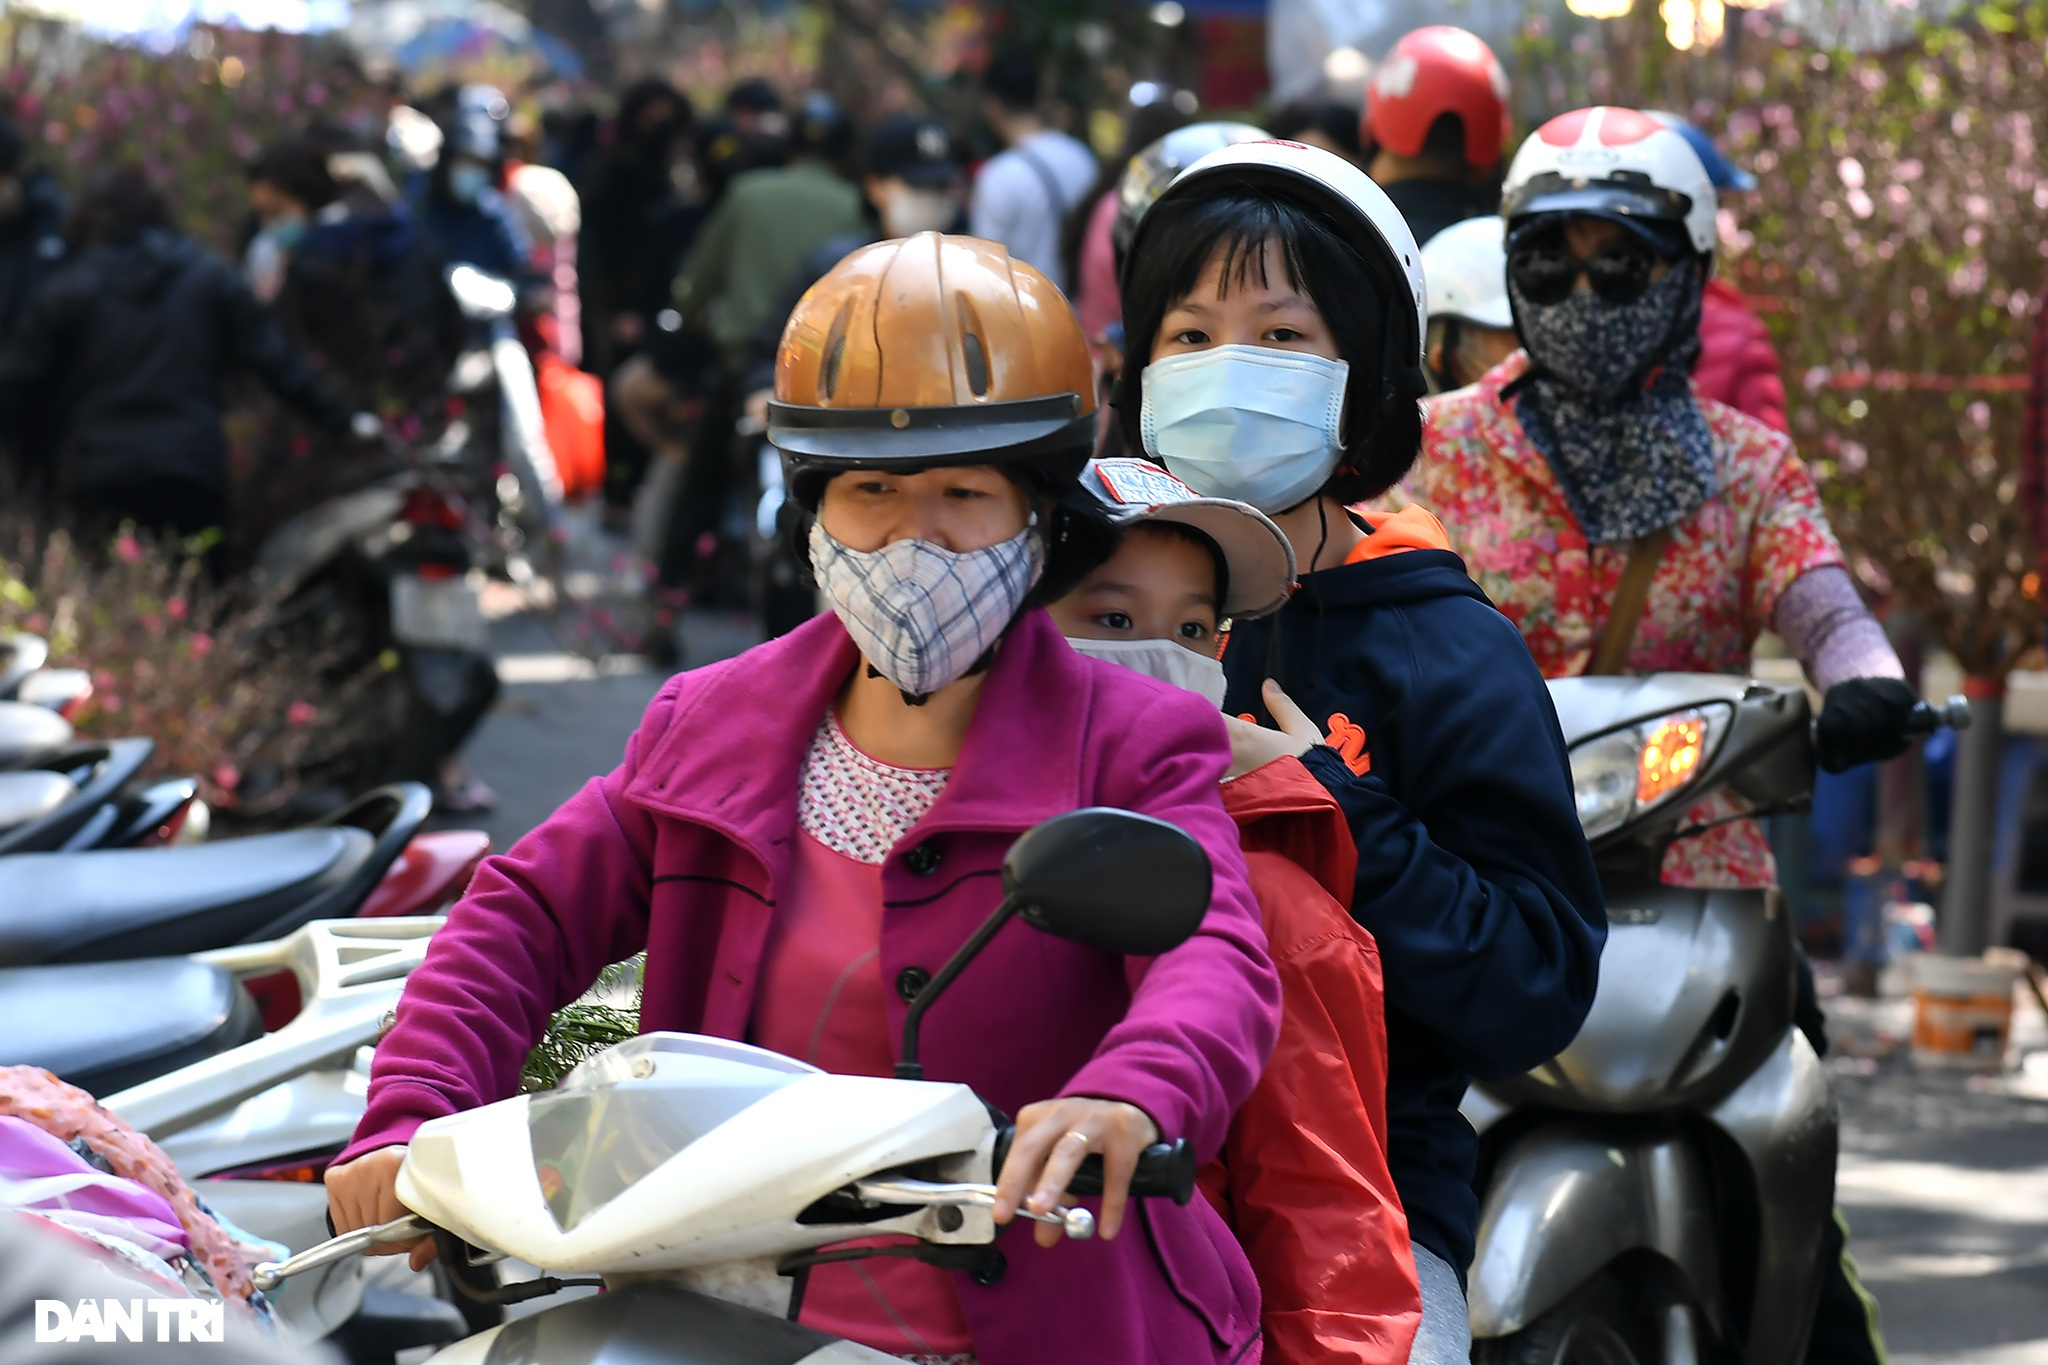 The sunshine came back and filled the streets of Hanoi on the 29th of Tet - 13